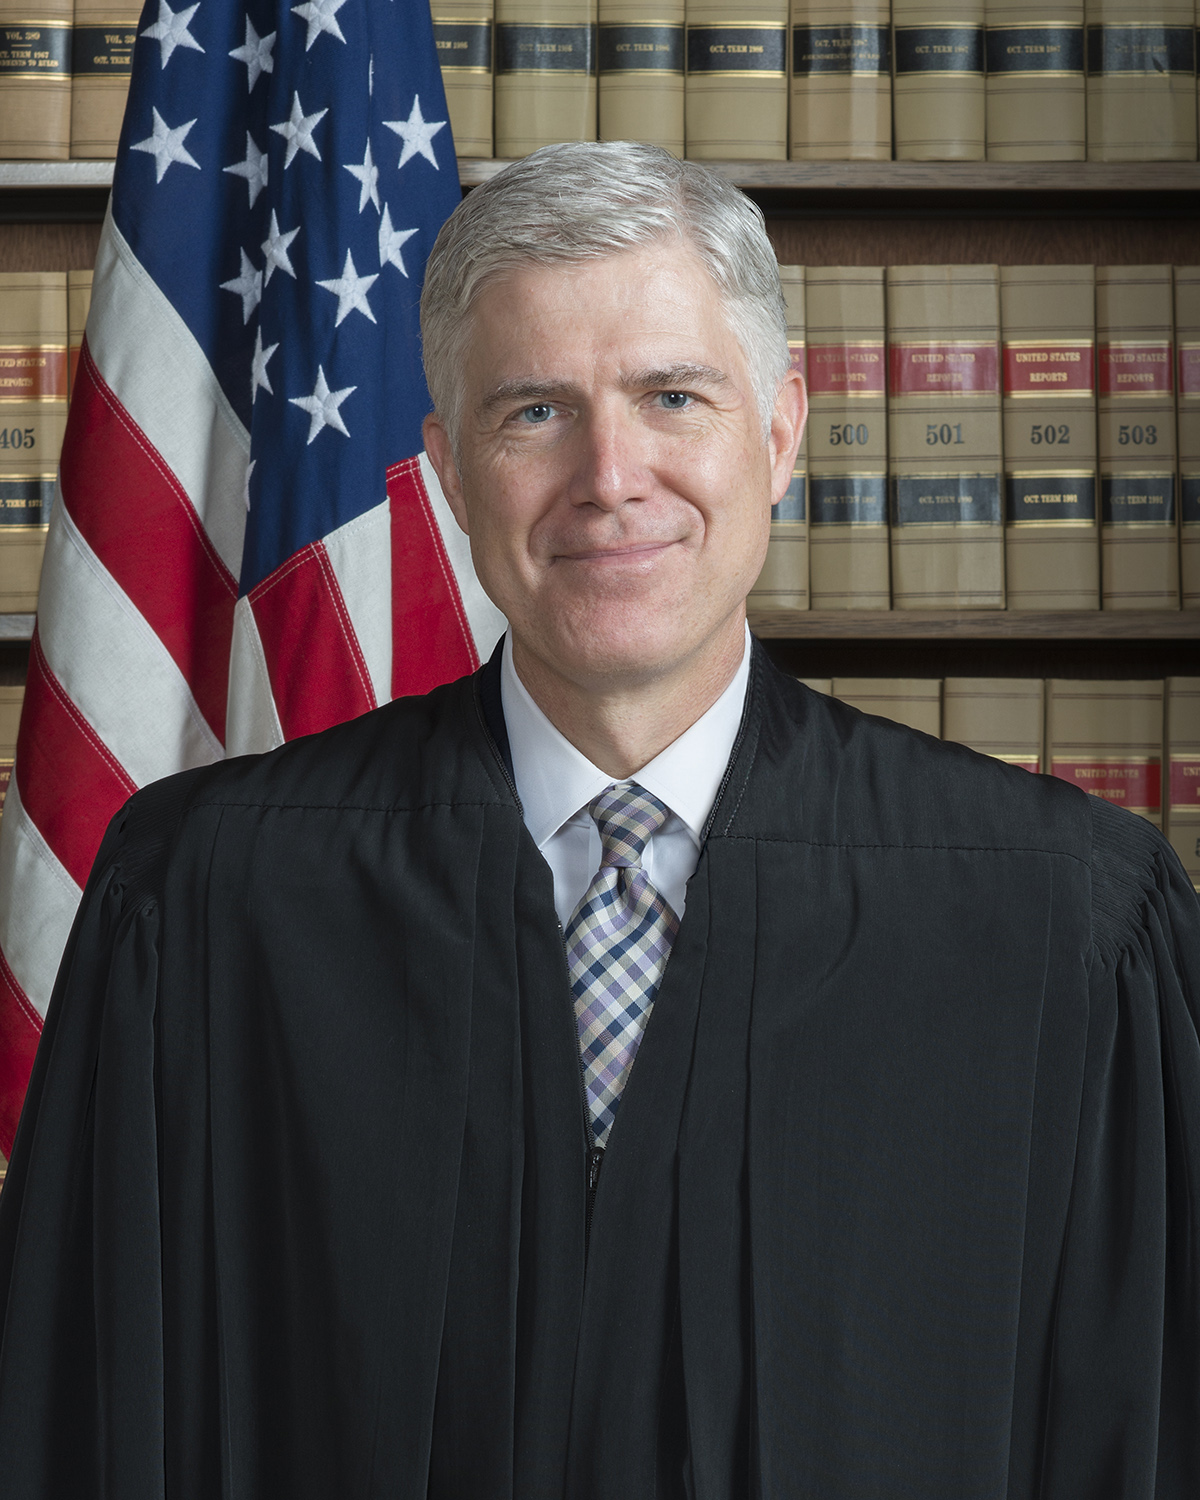 Associate Justice Neil Gorsuch Official Portrait.jpg